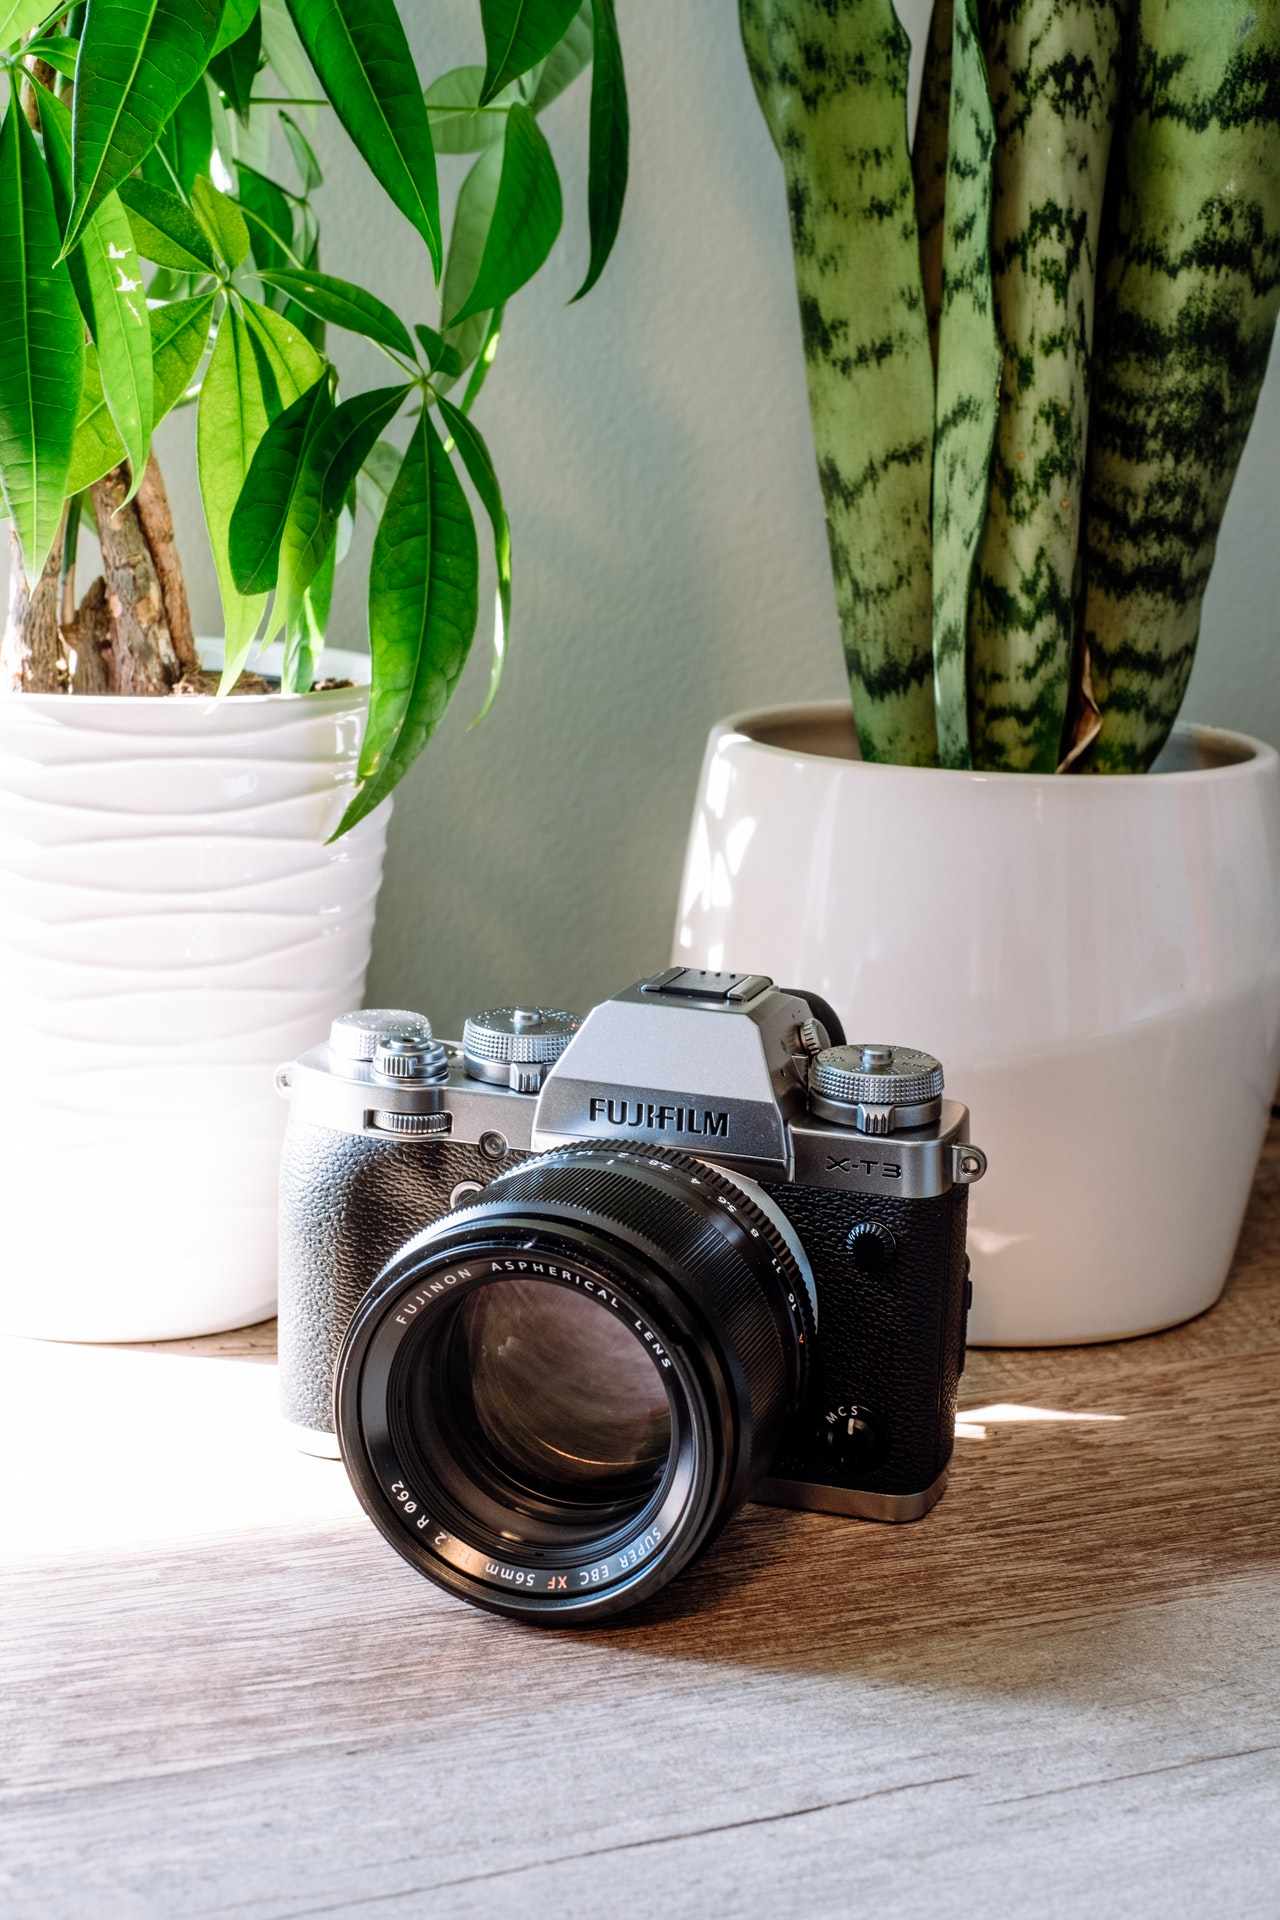 black and grey fujifilm dslr camera beside white potted